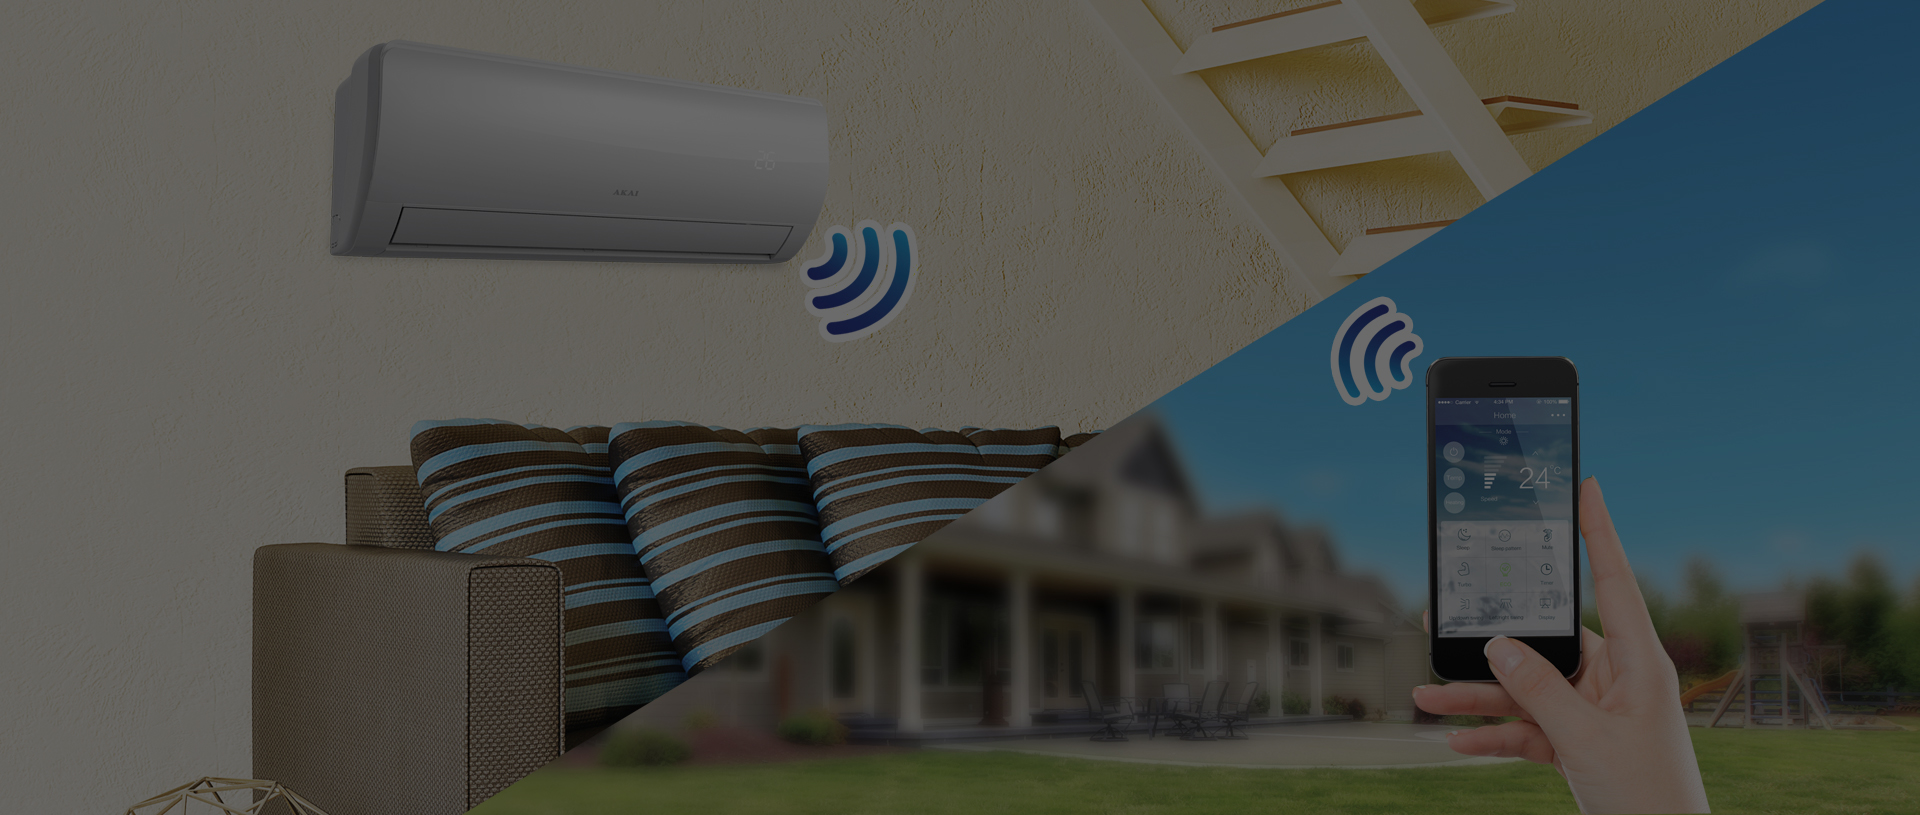 Control your air conditioner via Wi-Fi